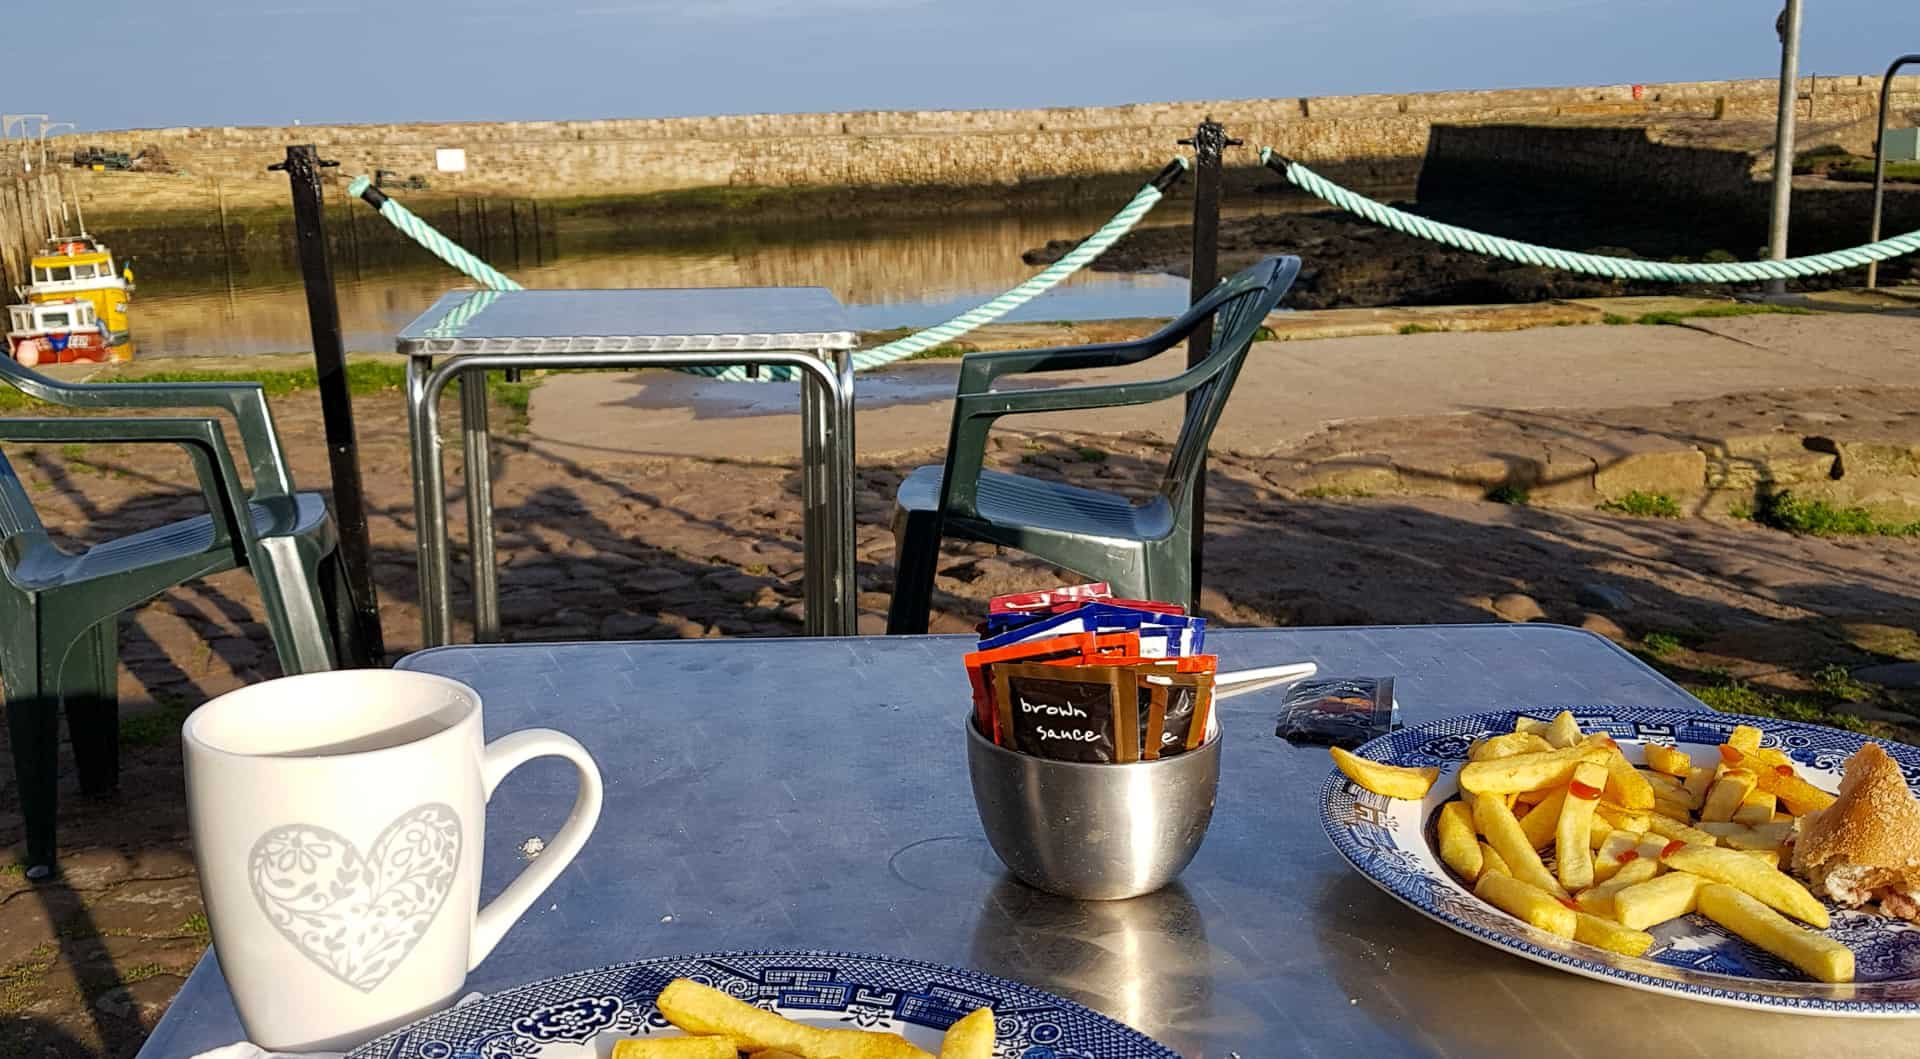 Bacon roll and chips in warm November sunshine, an excellent way to end a morning's fishing